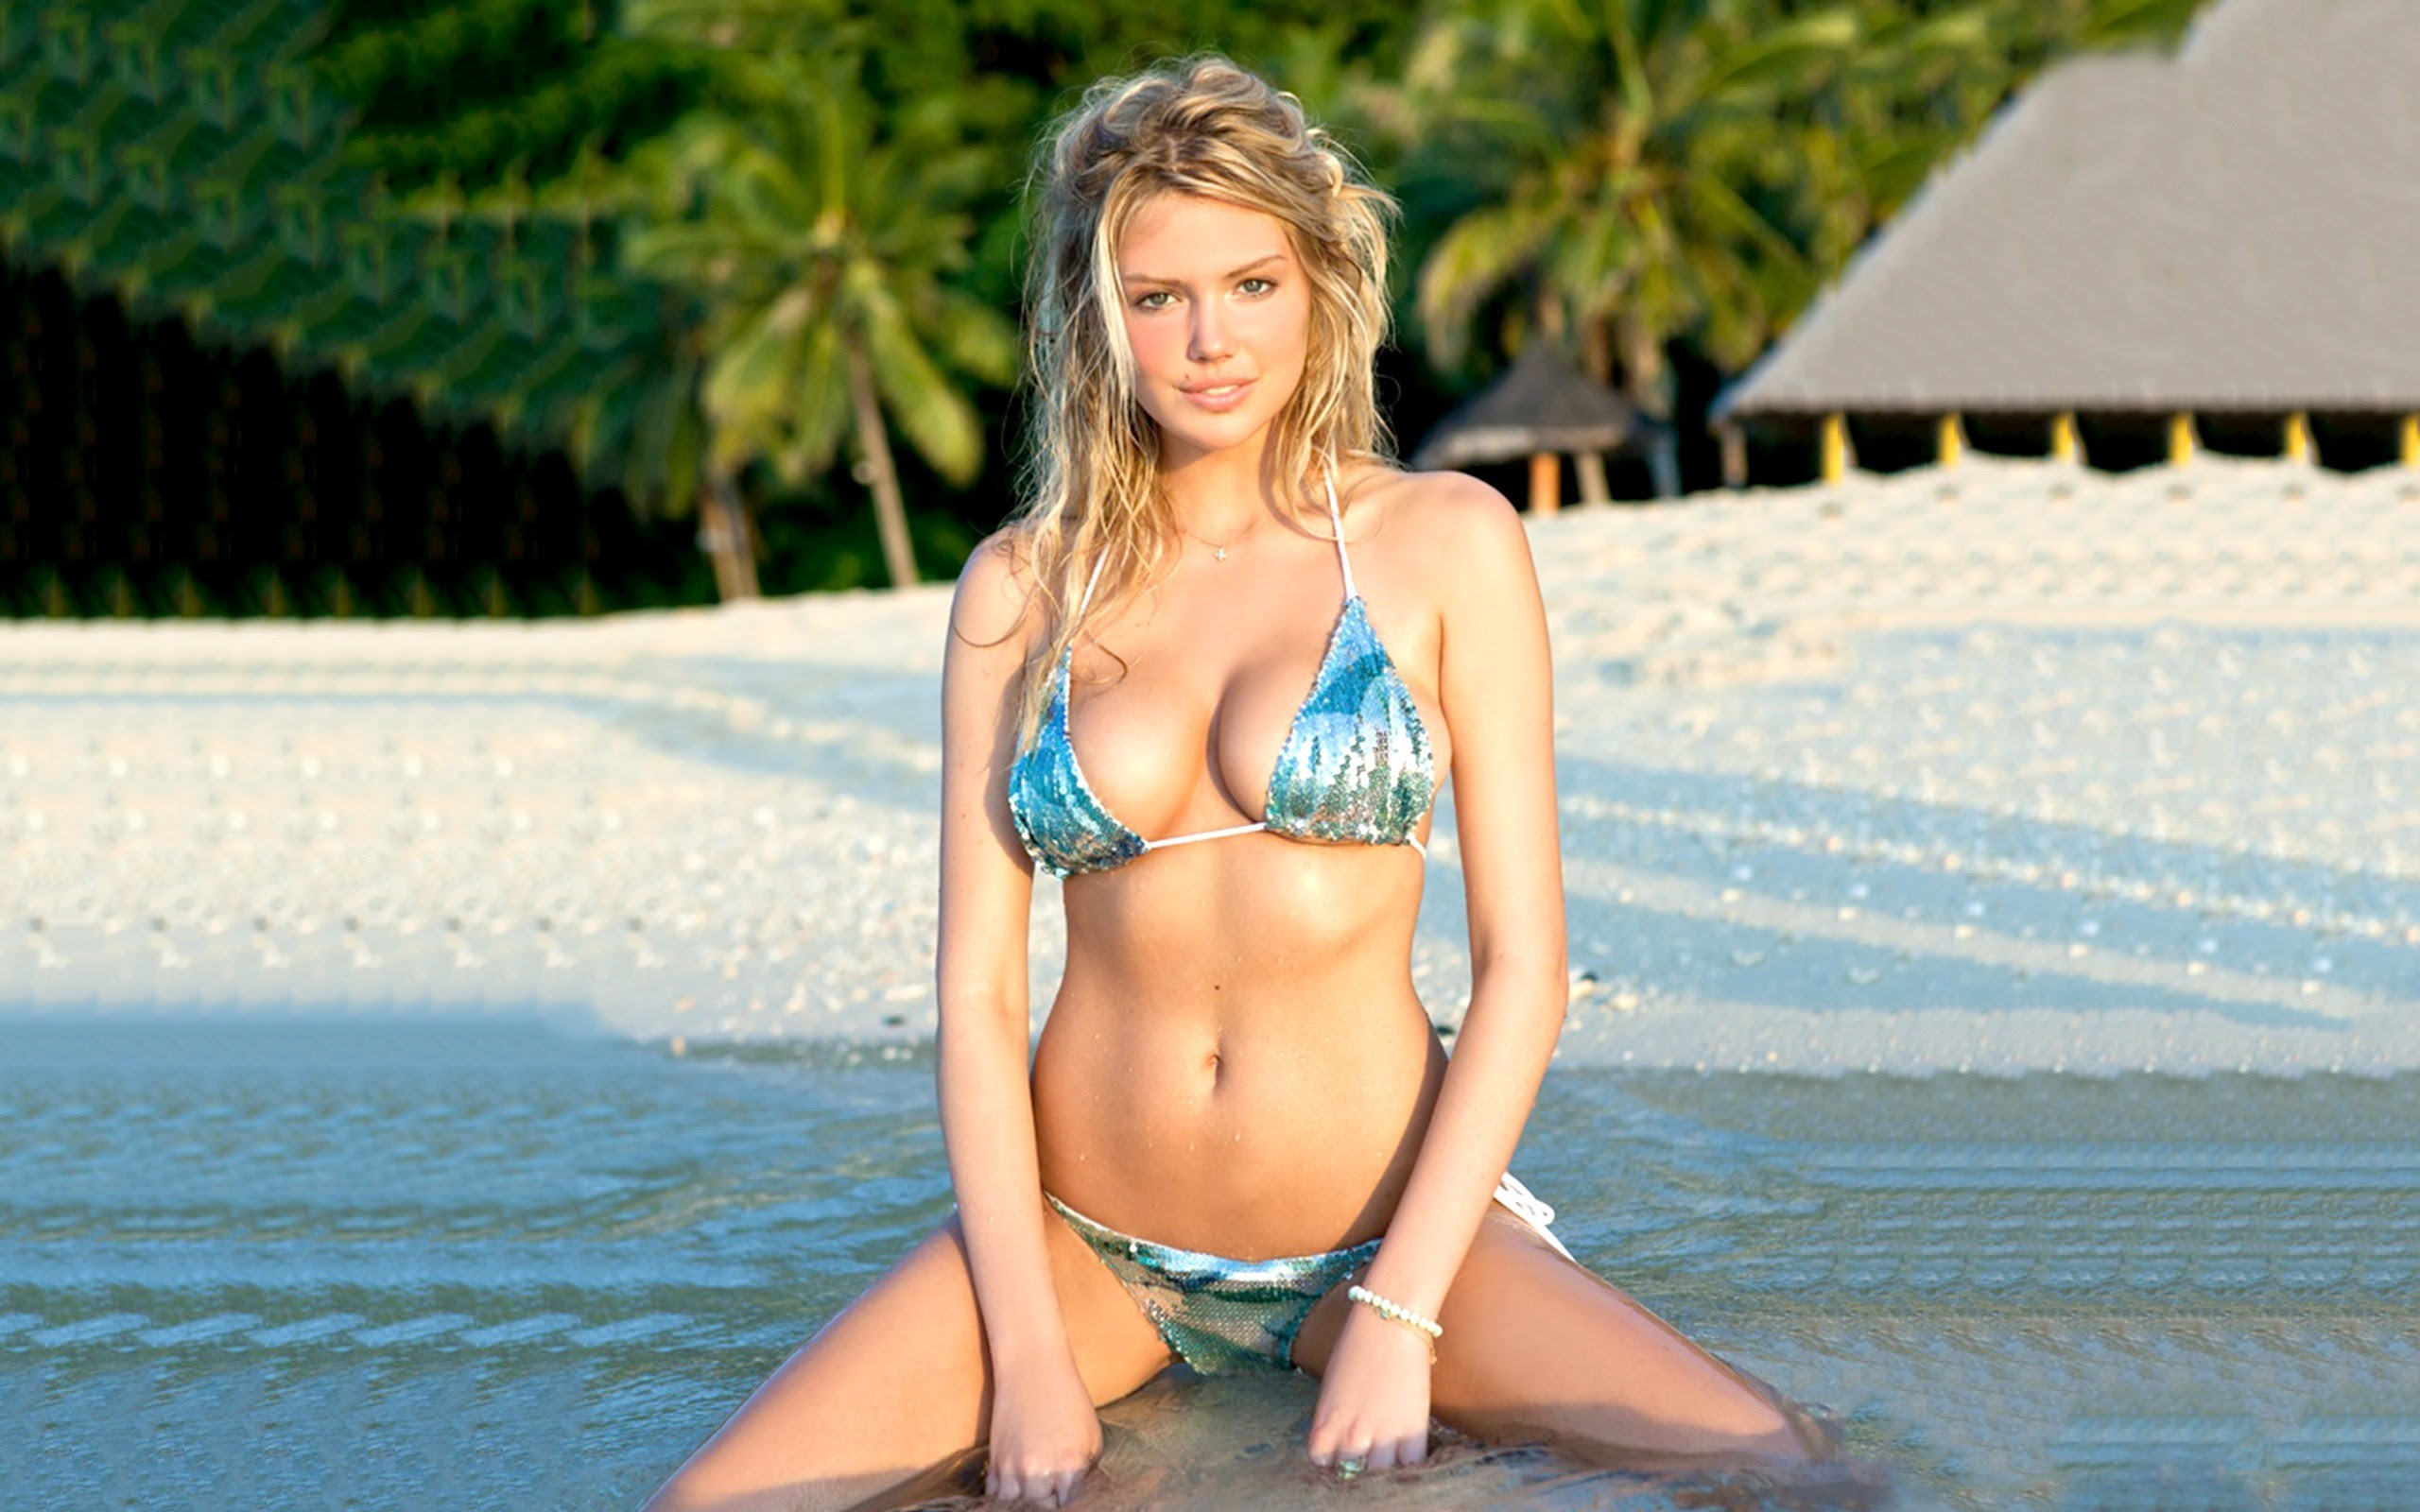 Kate Upton Wallpaper Hd Widescreen 71 Images